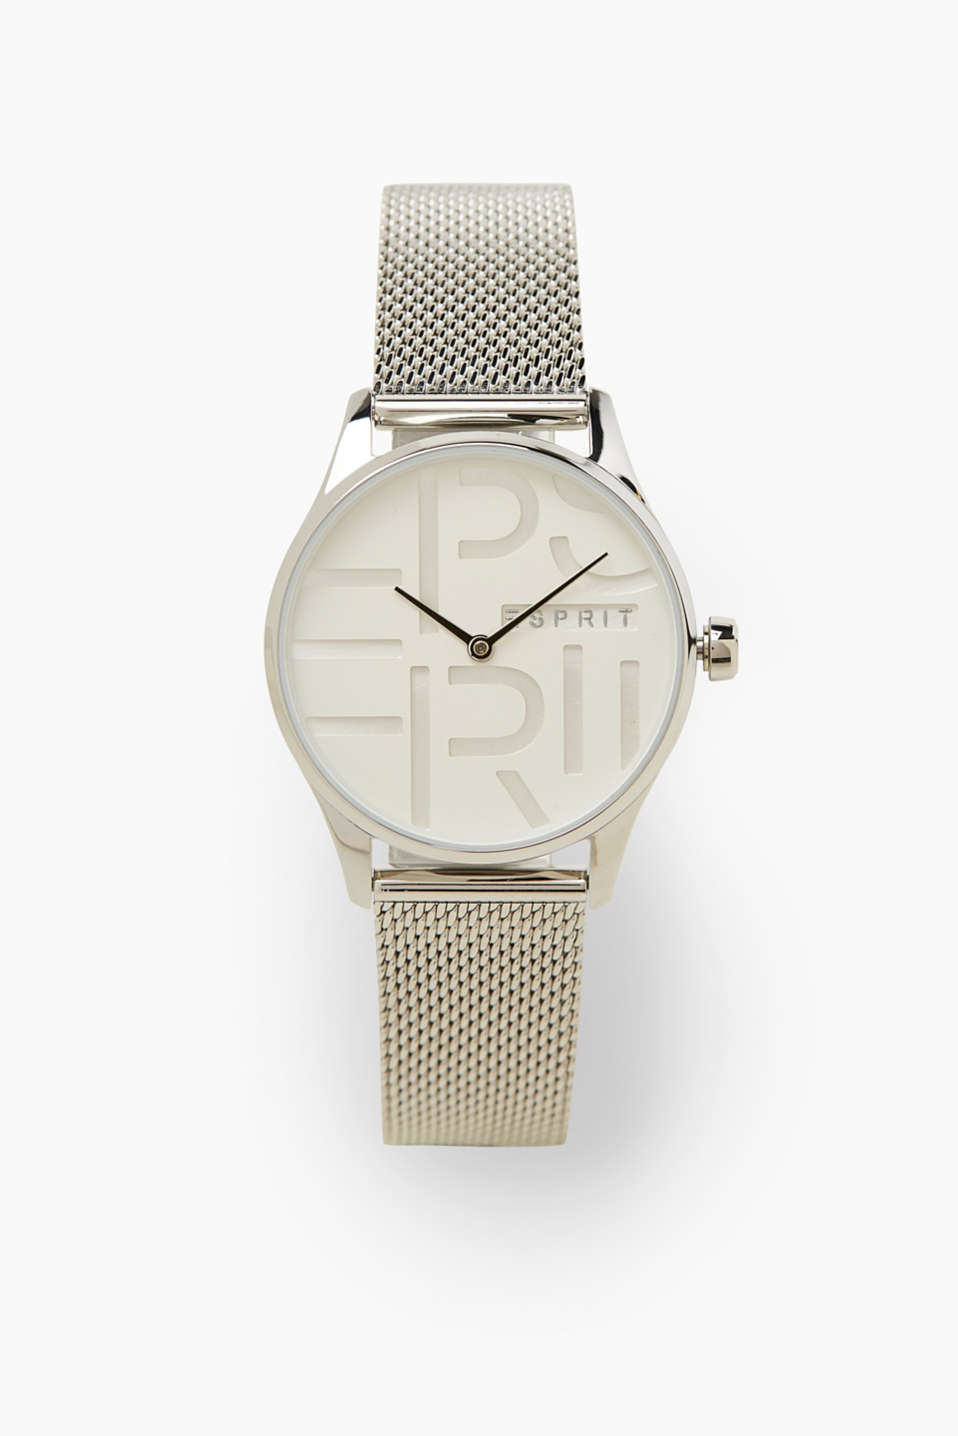 Esprit - Stainless-steel watch with a Milanese strap